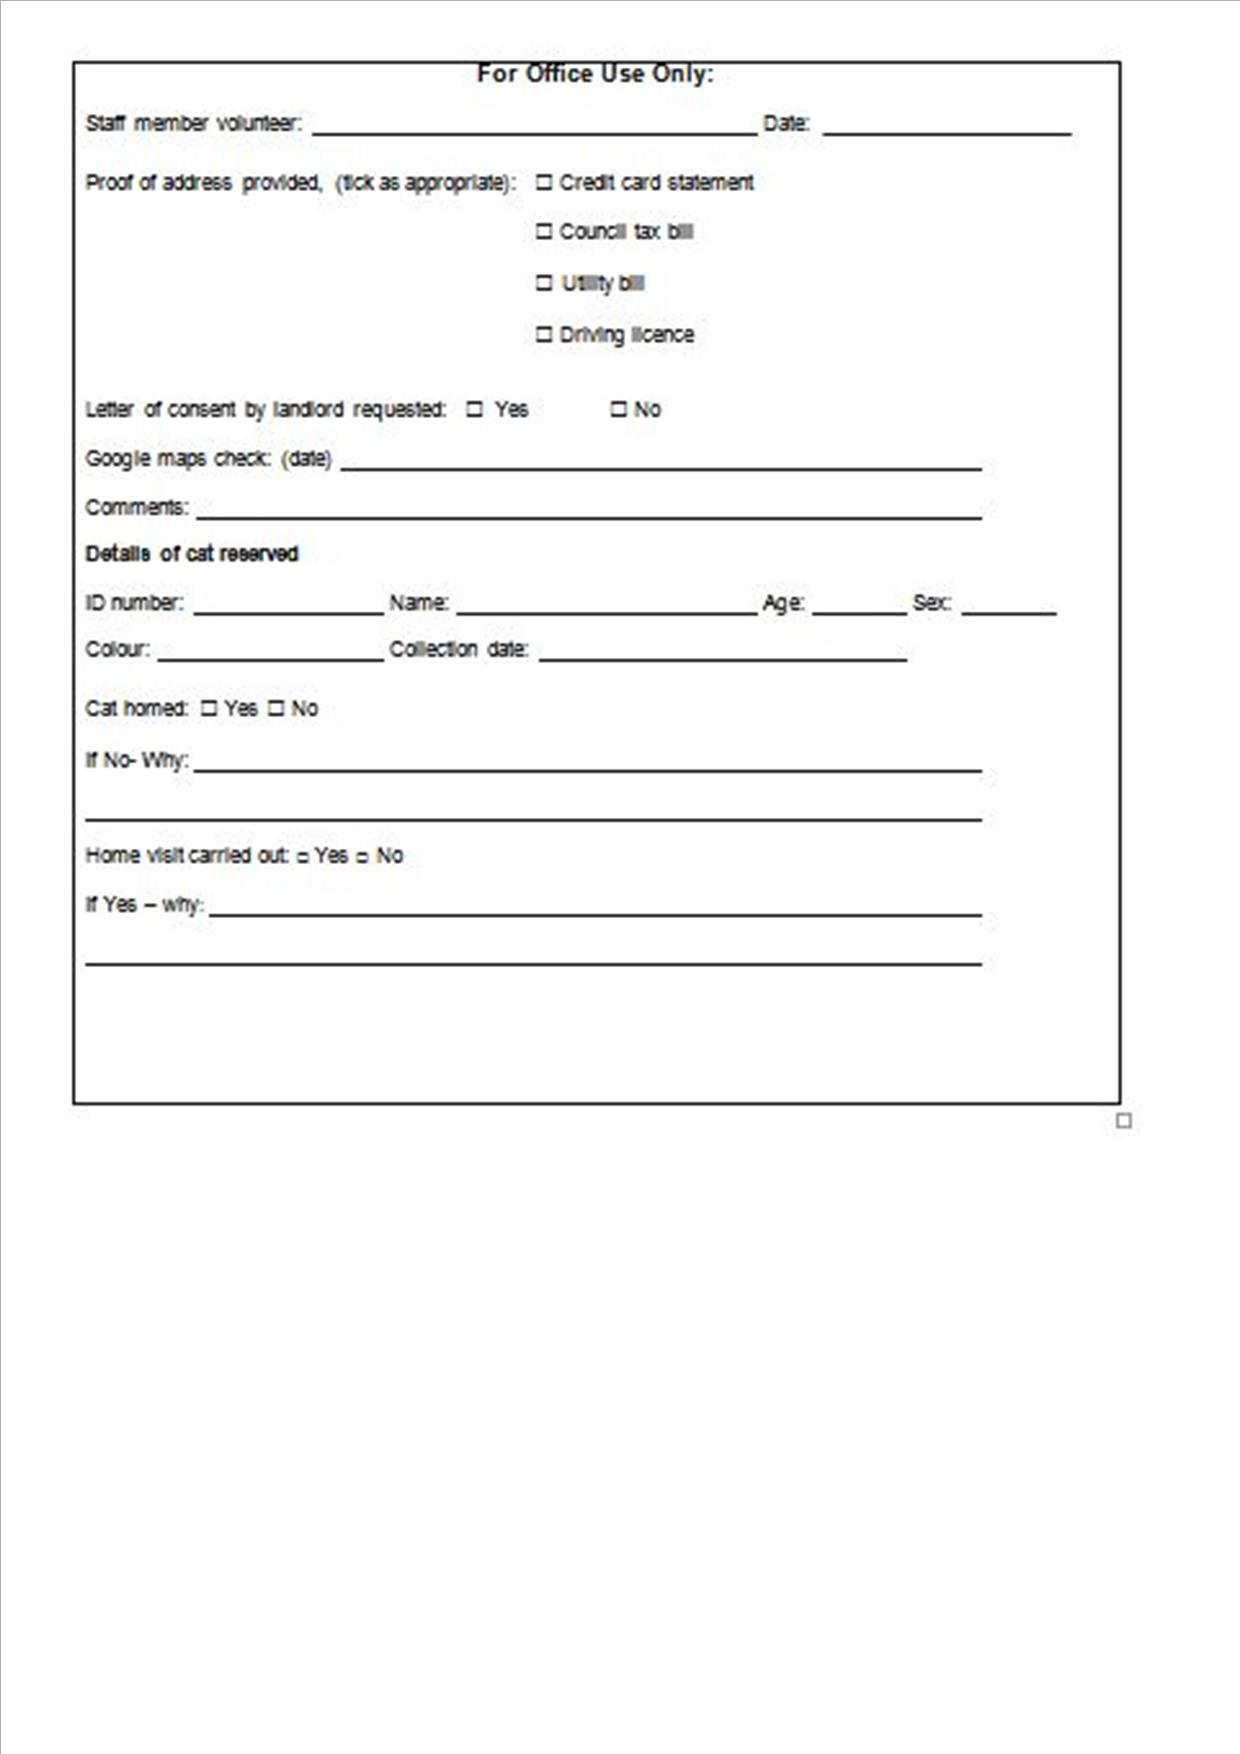 dating questionnaire form